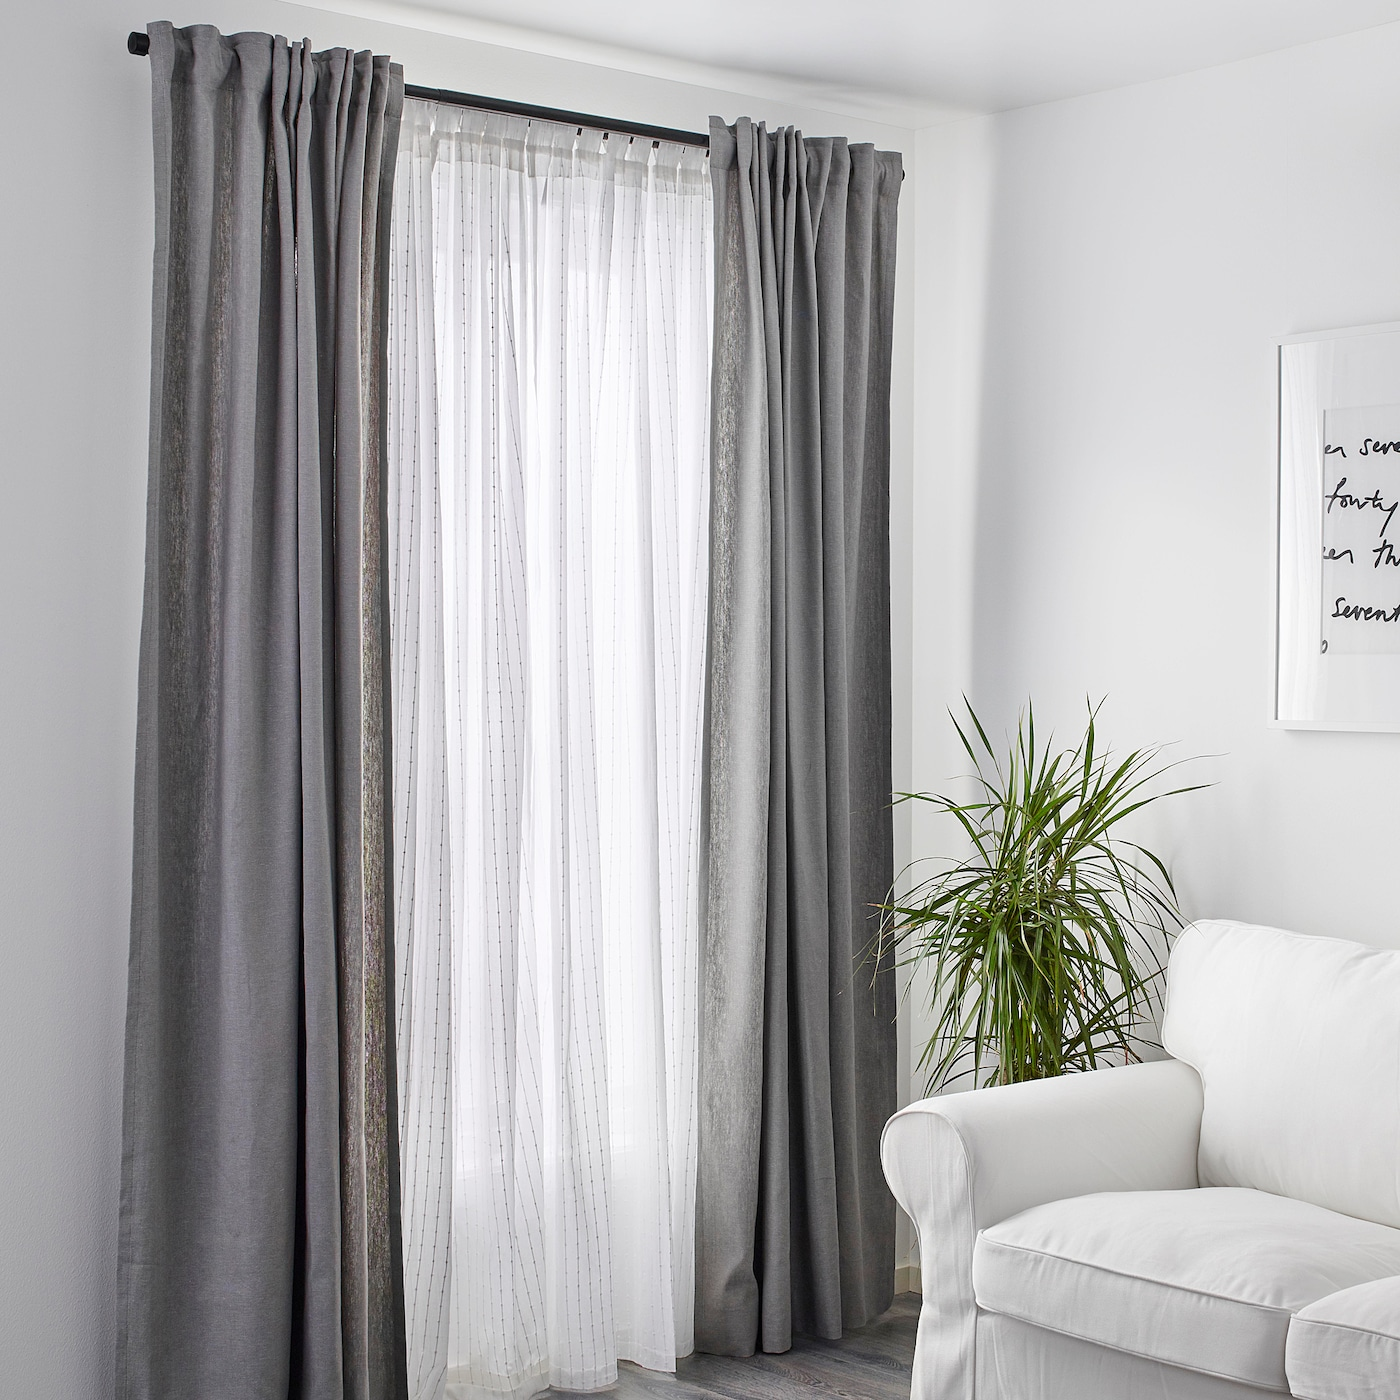 MATILDA Sheer curtains, 1 pair - white 55x98 ""